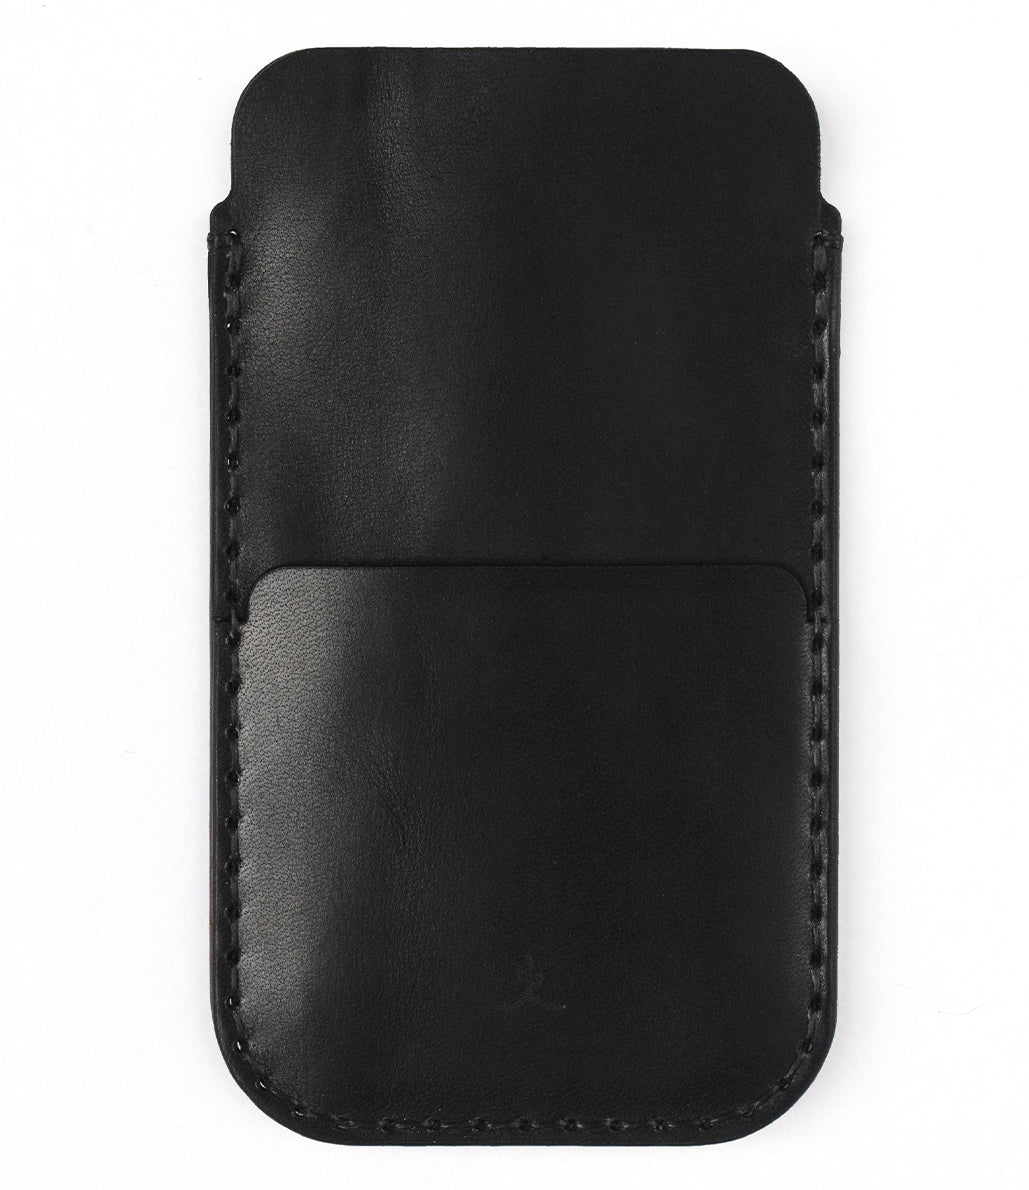 iPhone Wallet- Black